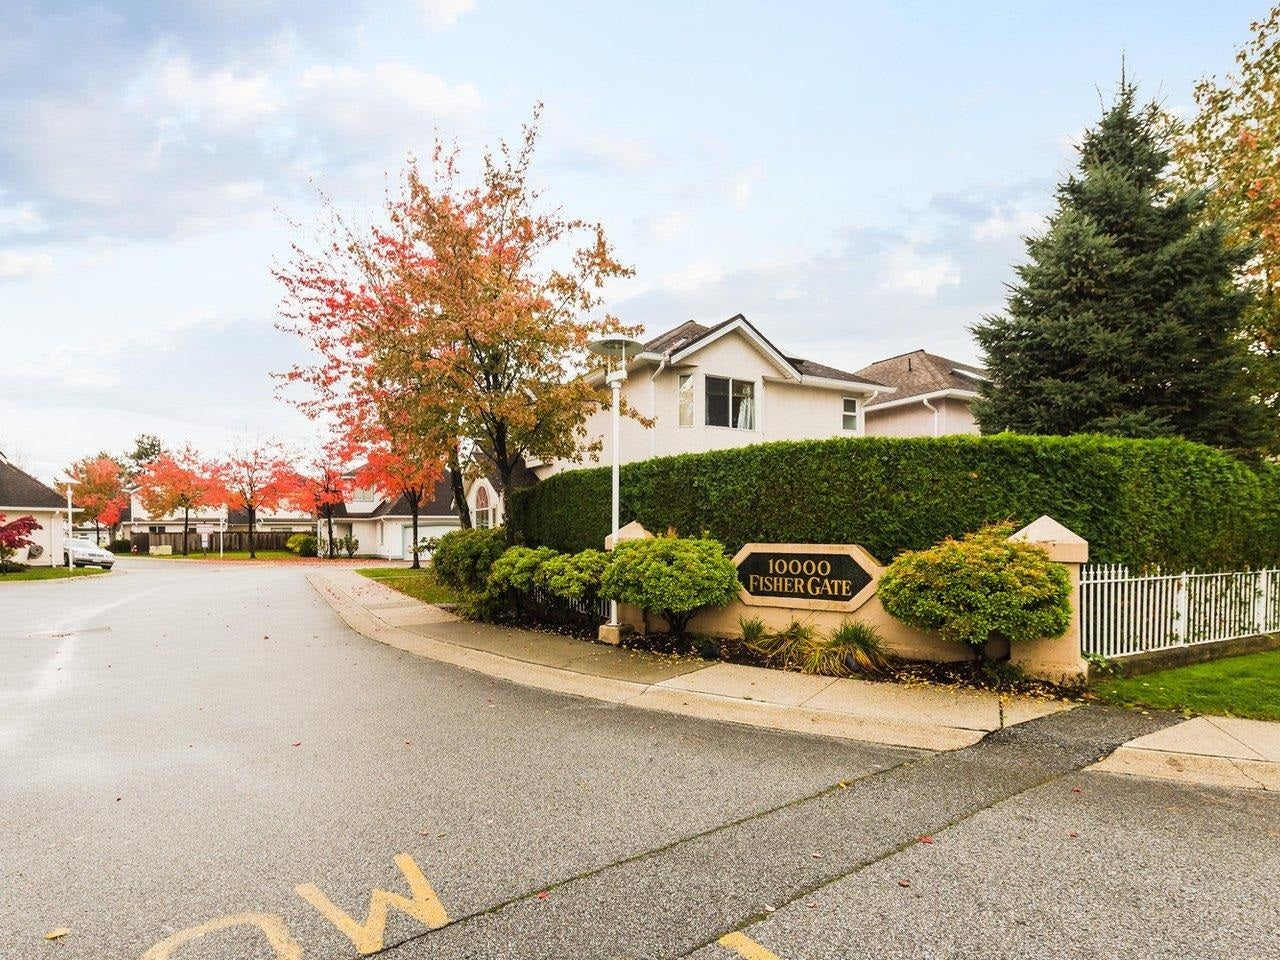 58 10000 FISHER GATE - West Cambie Townhouse for sale, 3 Bedrooms (R2627939)